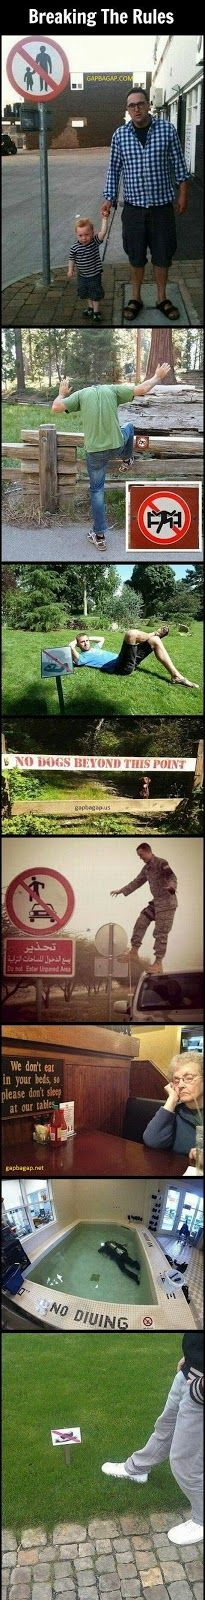 Top 8 Funny Pictures Of People vs. Rules